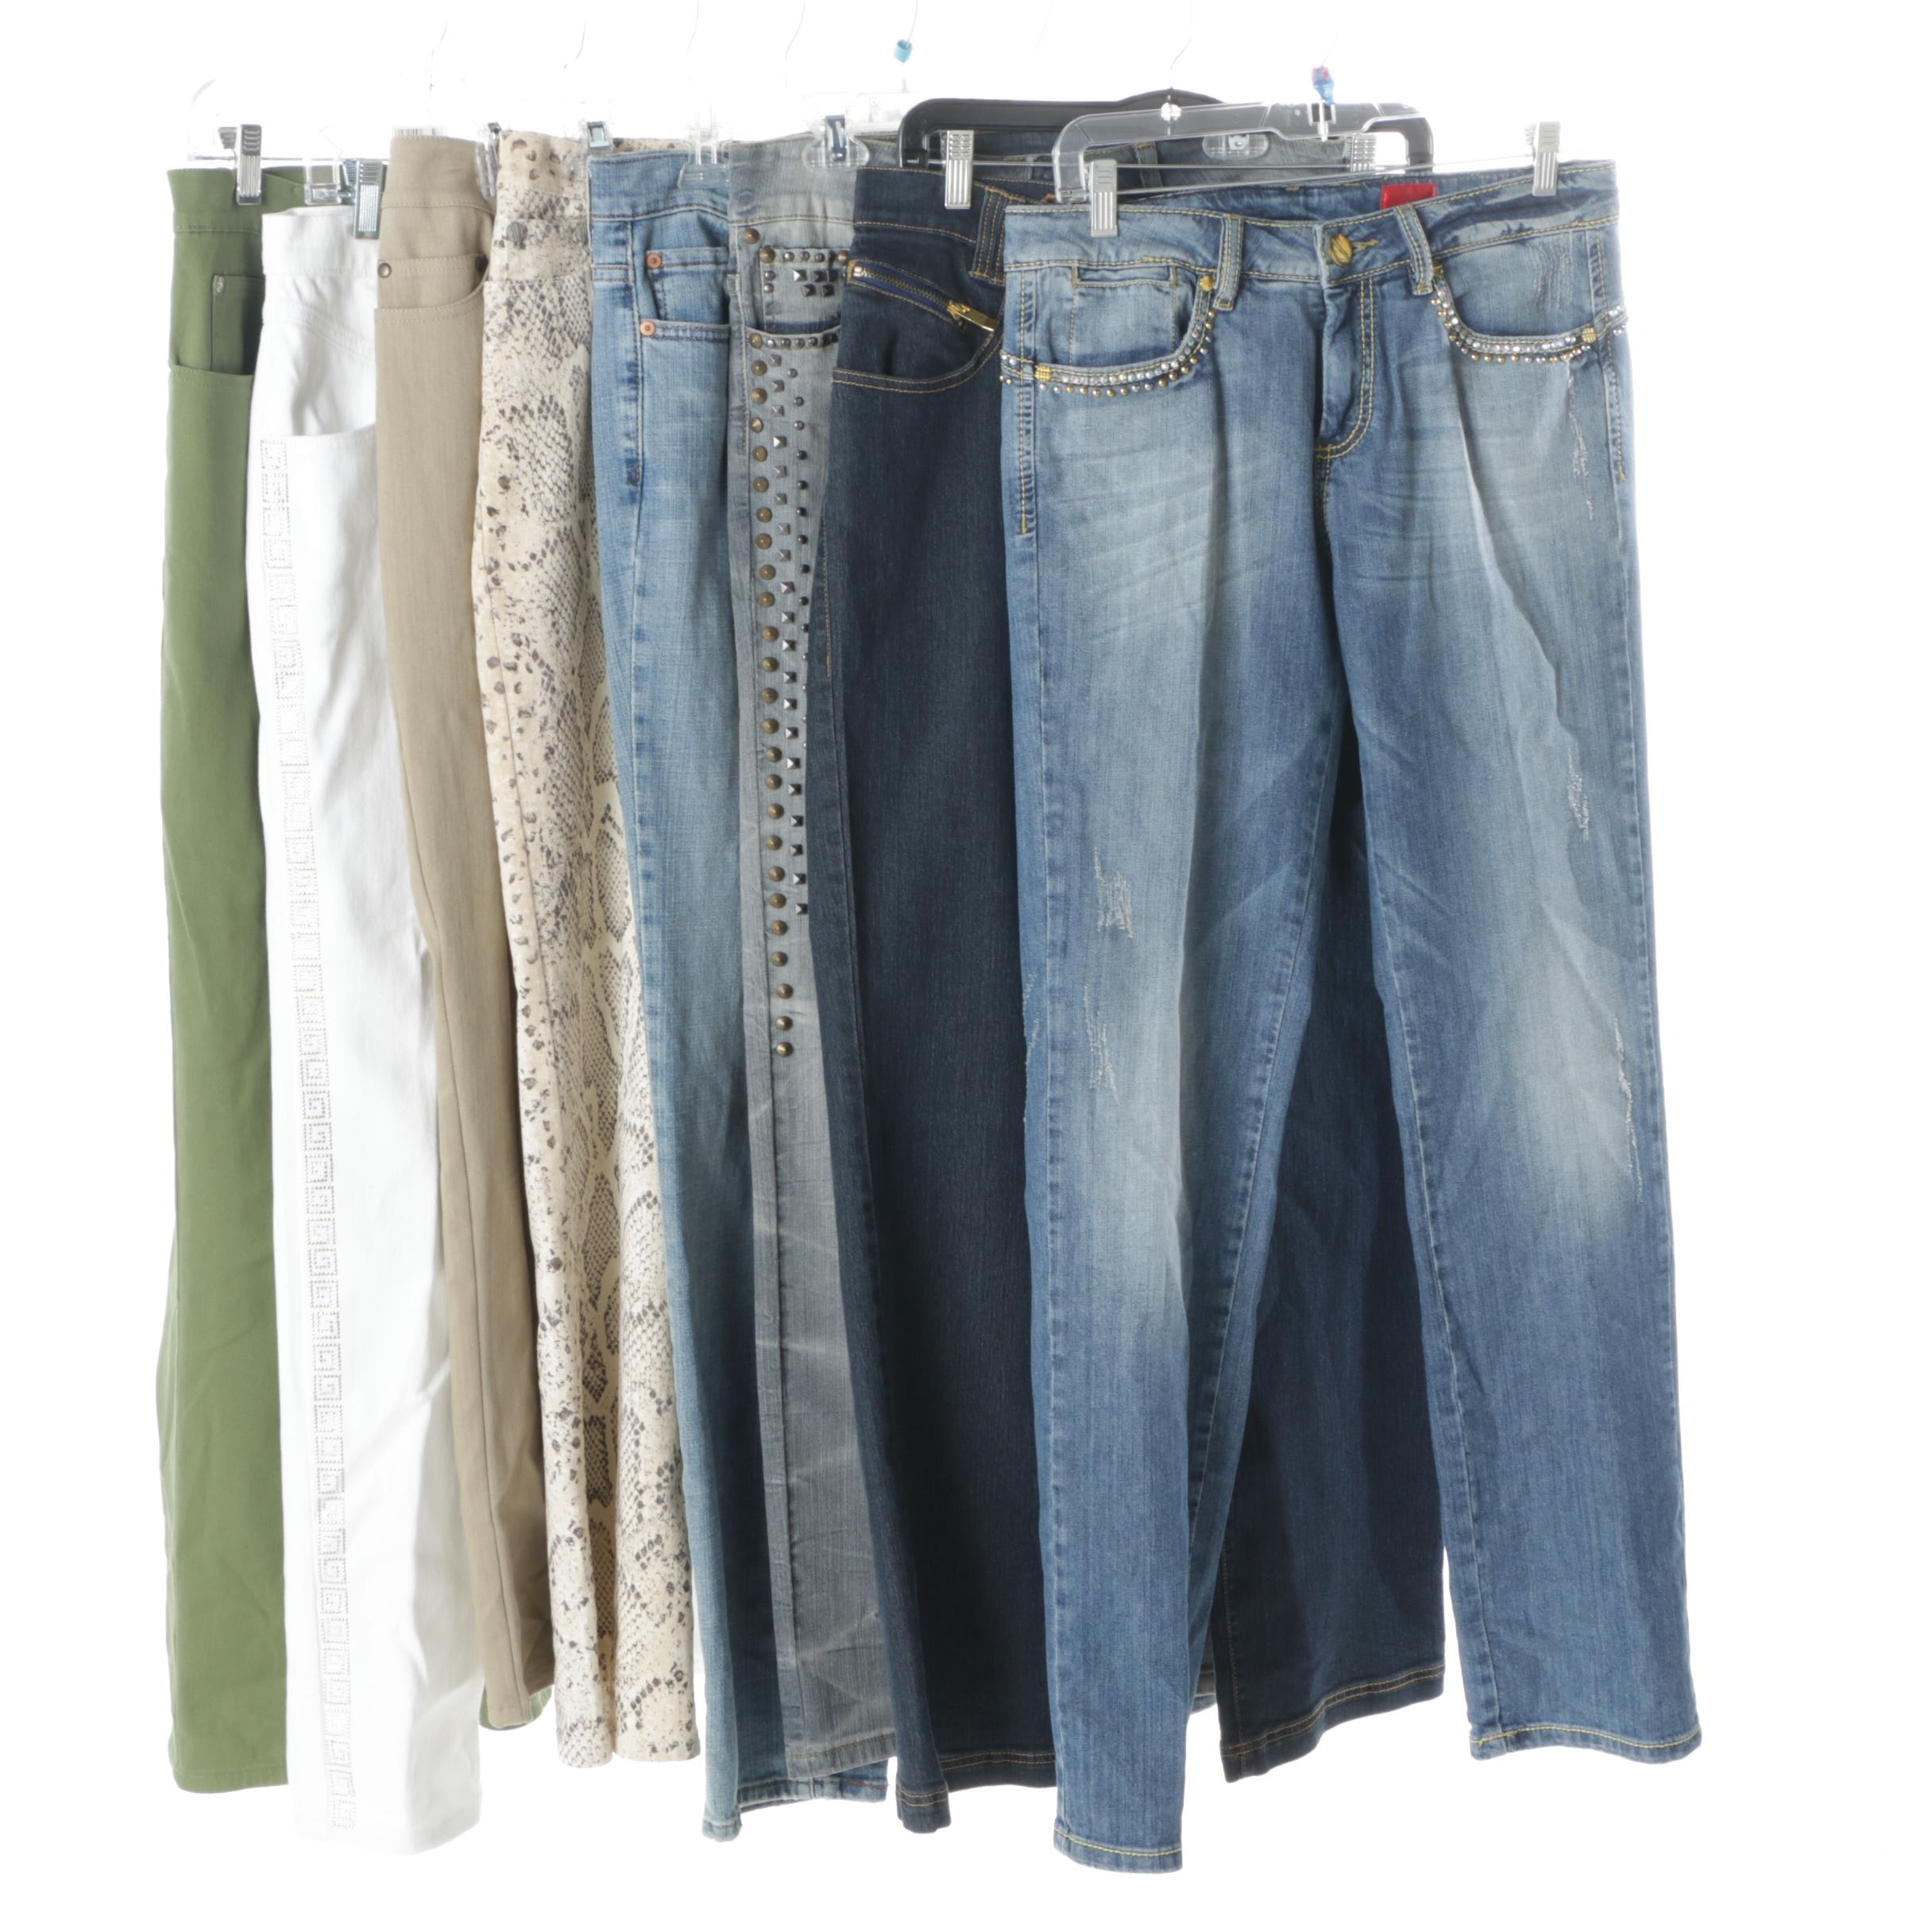 Women's Jeans Including V Cristina, Levi's and Cherokee